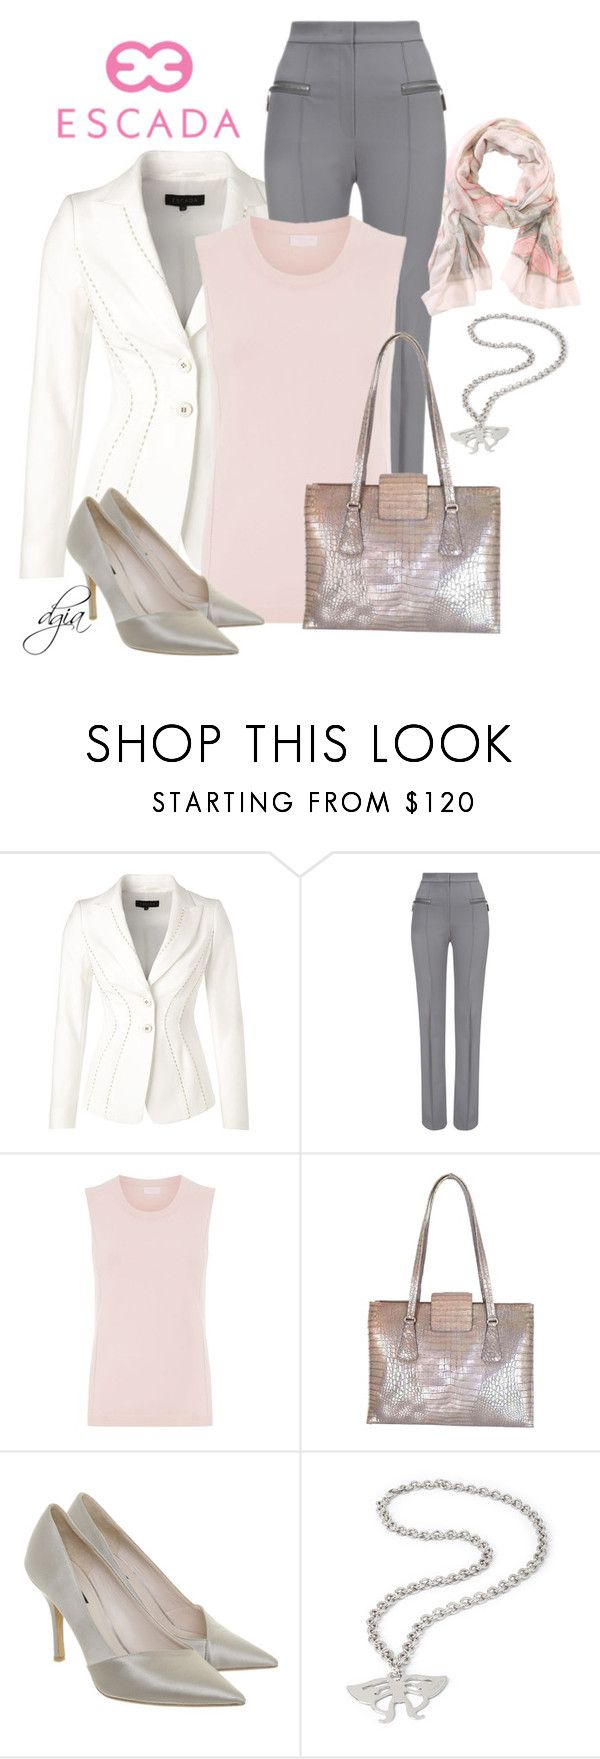 """""""ESCADA total look"""" by dgia ❤ liked on Polyvore featuring ESCADA and Escada Sport"""